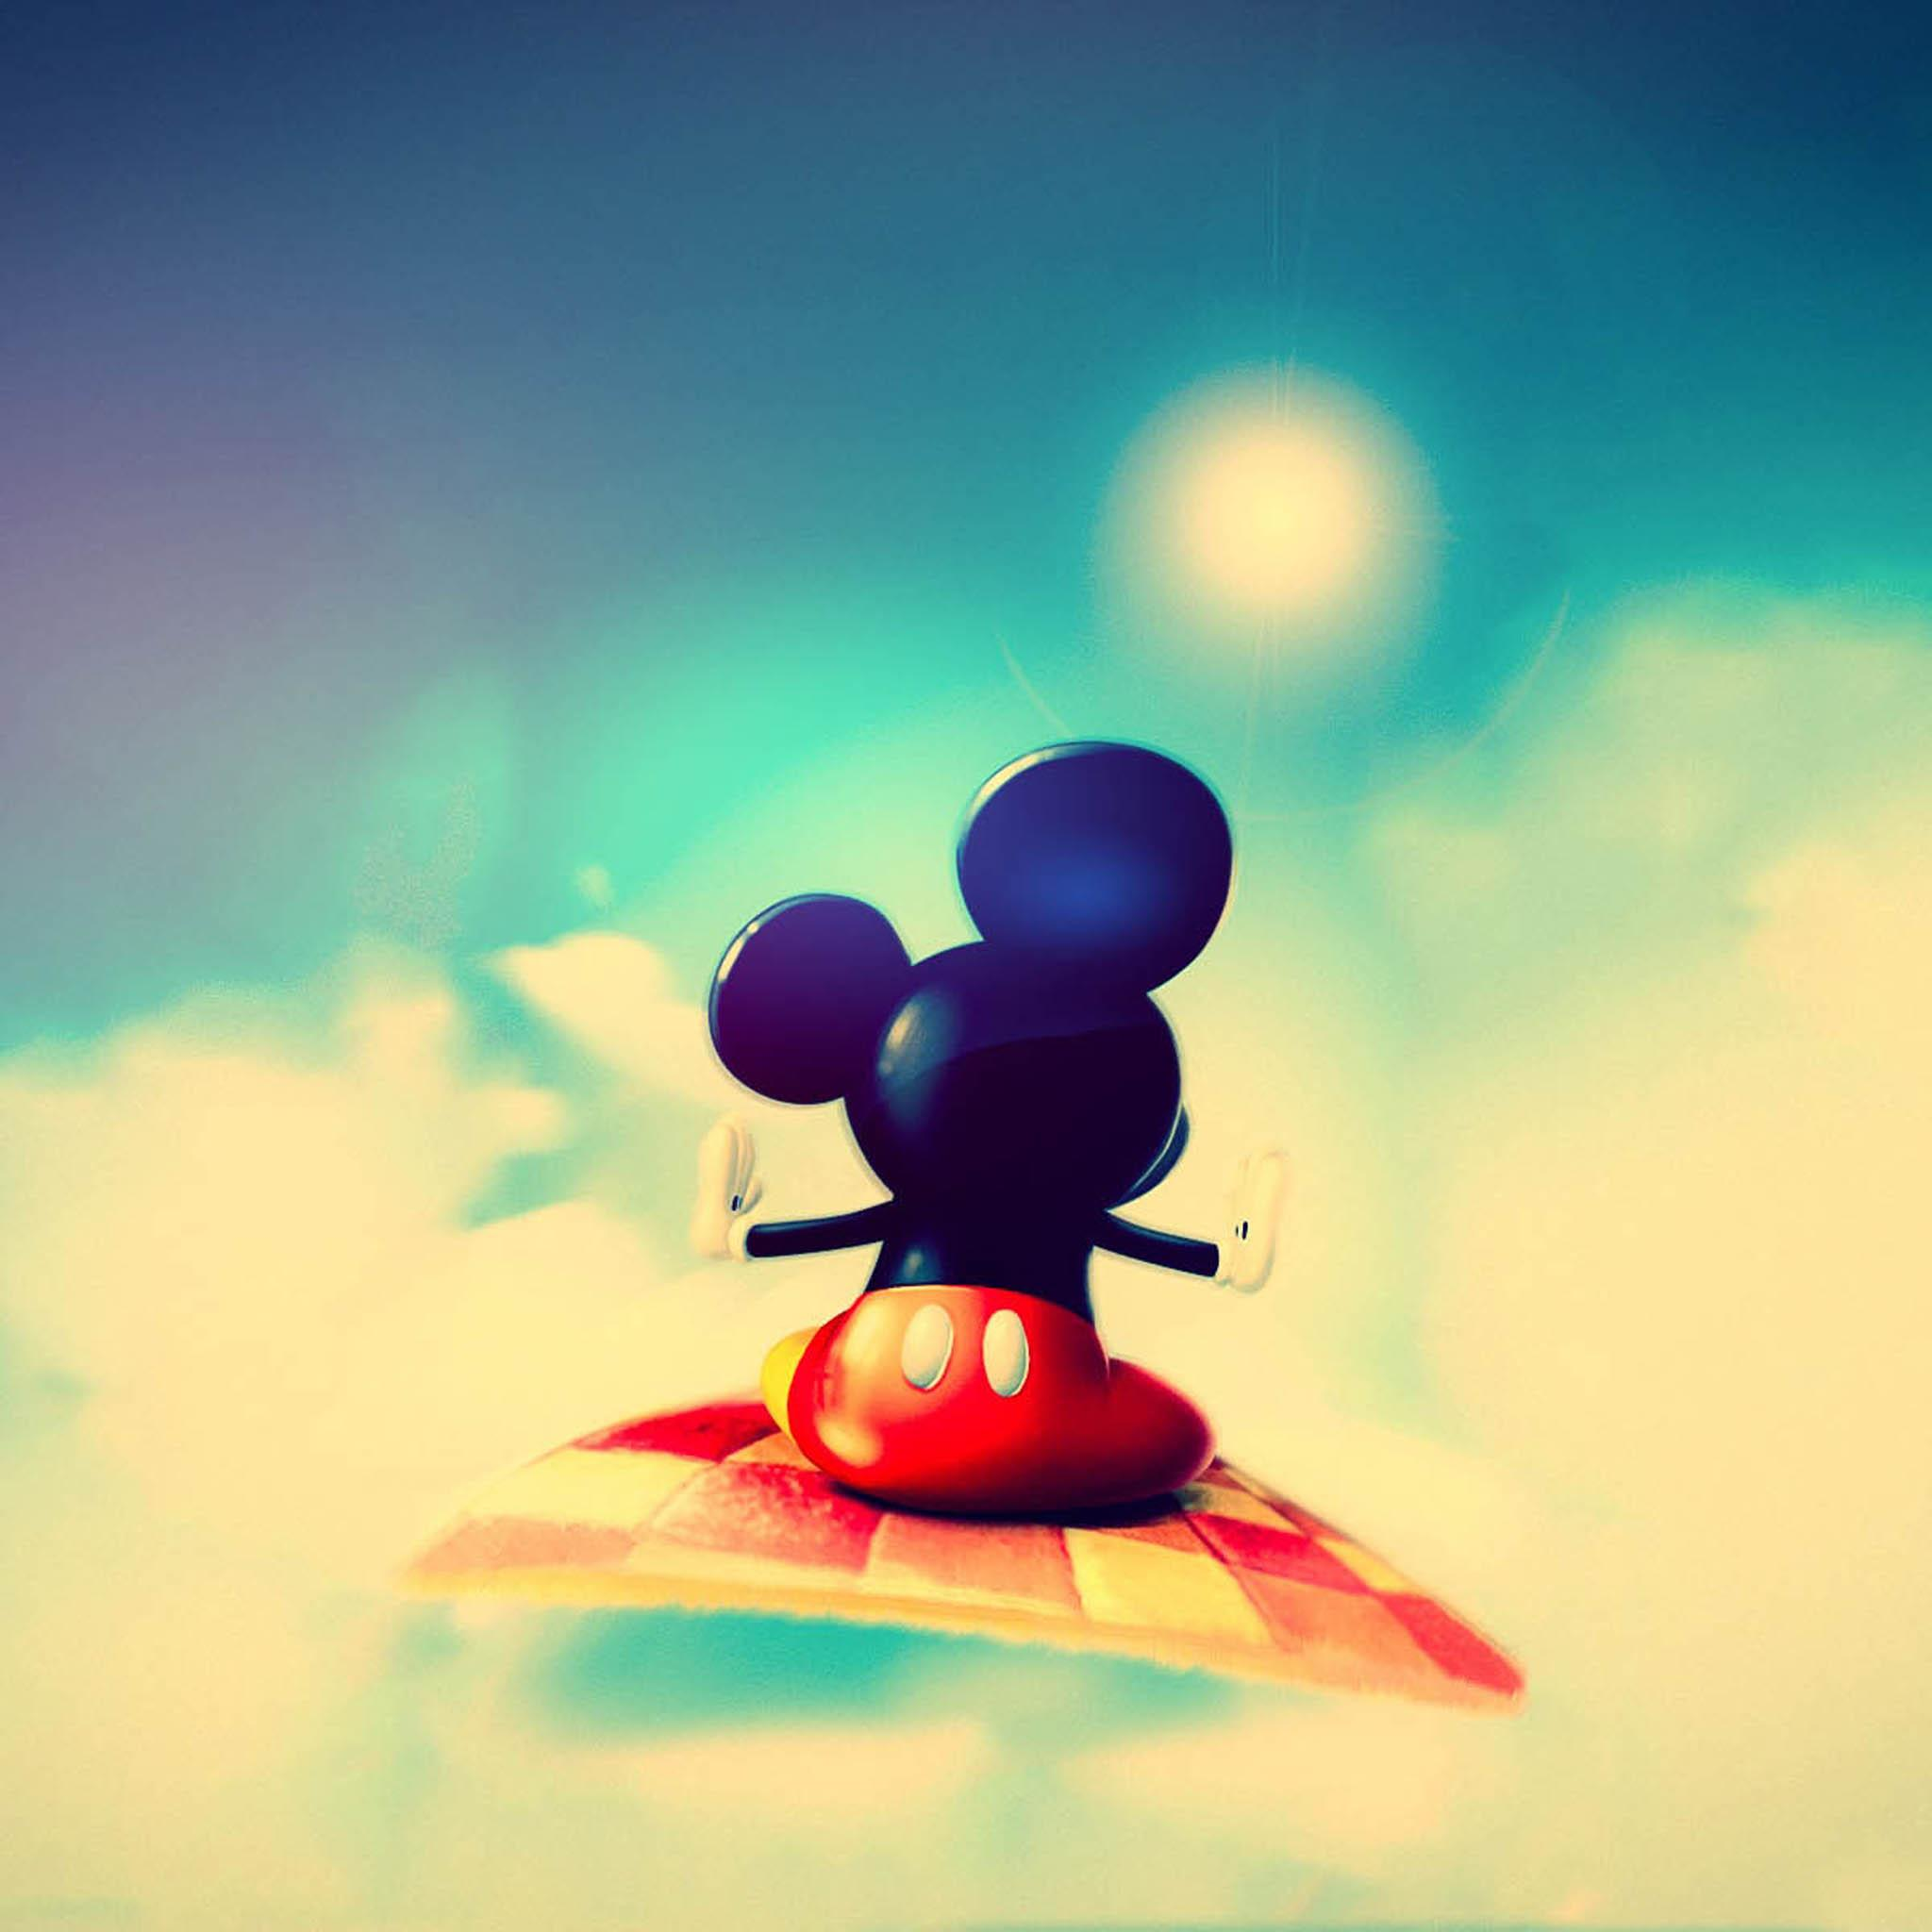 Cute Mickey Mouse Cute Mickey Mouse 3Wallpapers iPad Retina Cute Mickey Mouse   iPad Retina